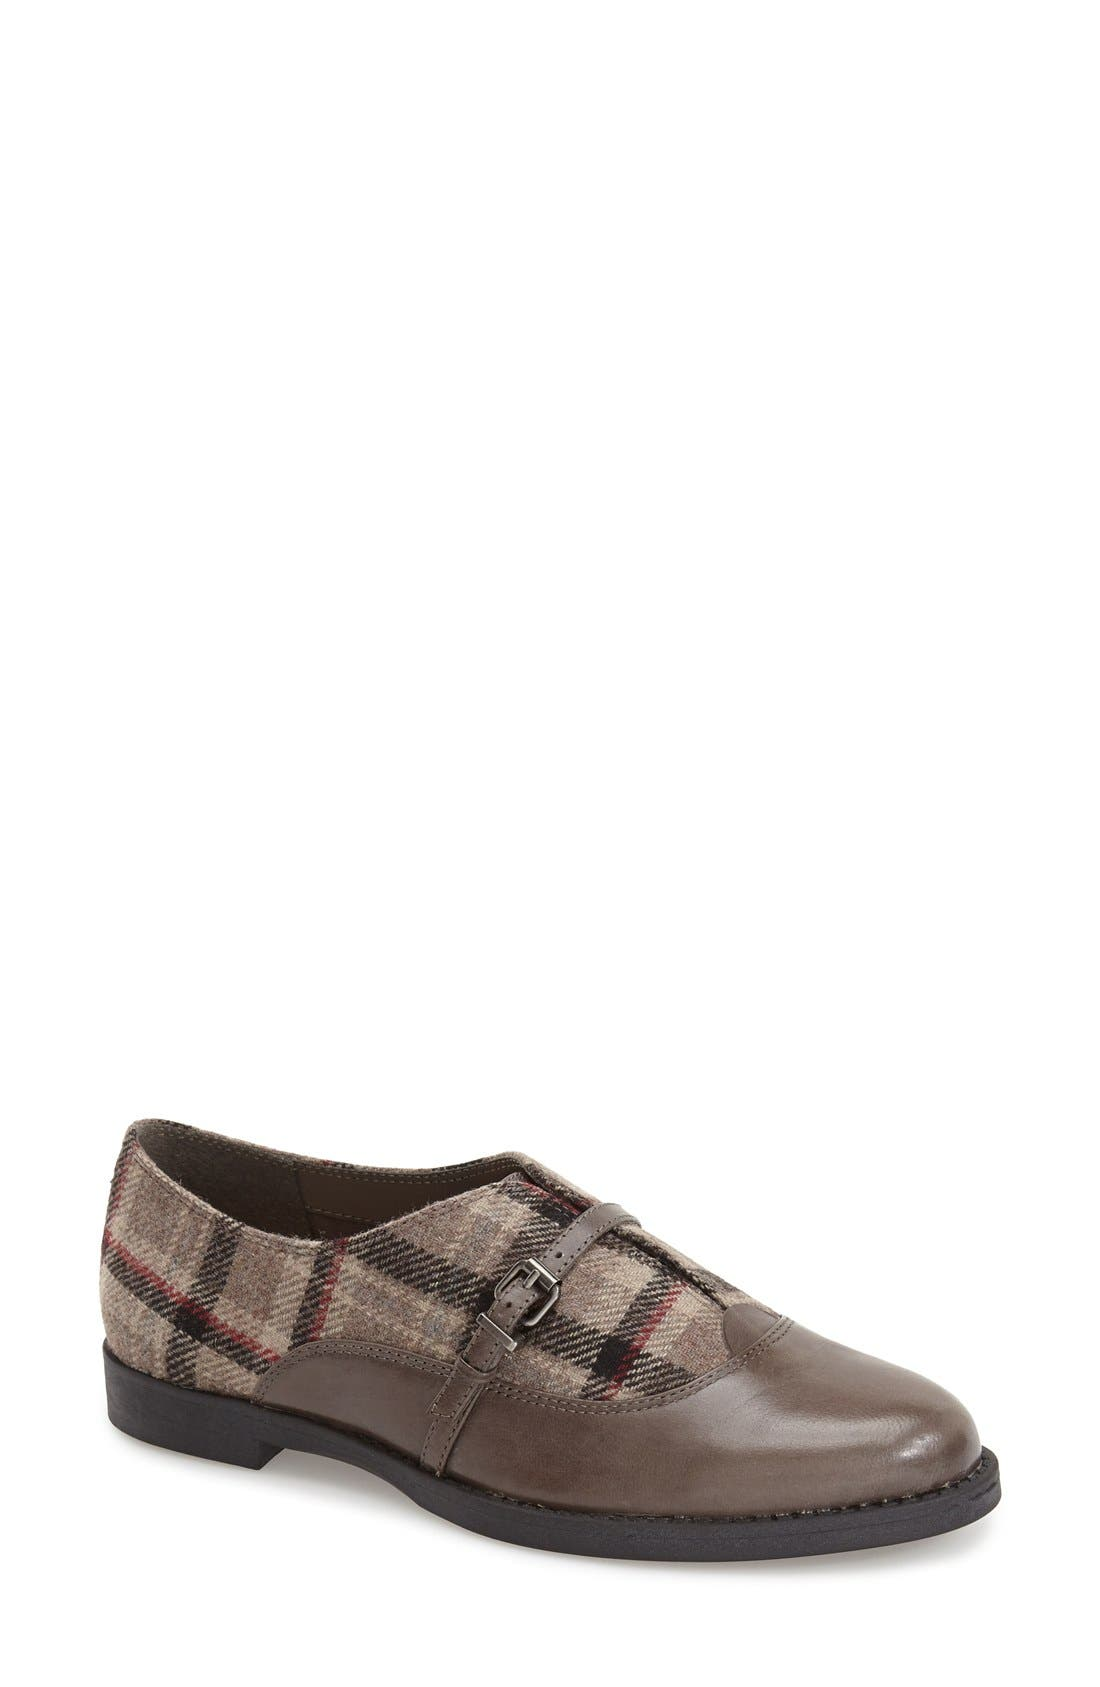 Alternate Image 1 Selected - Bella Vita 'Reese' Slip On Oxford (Women)